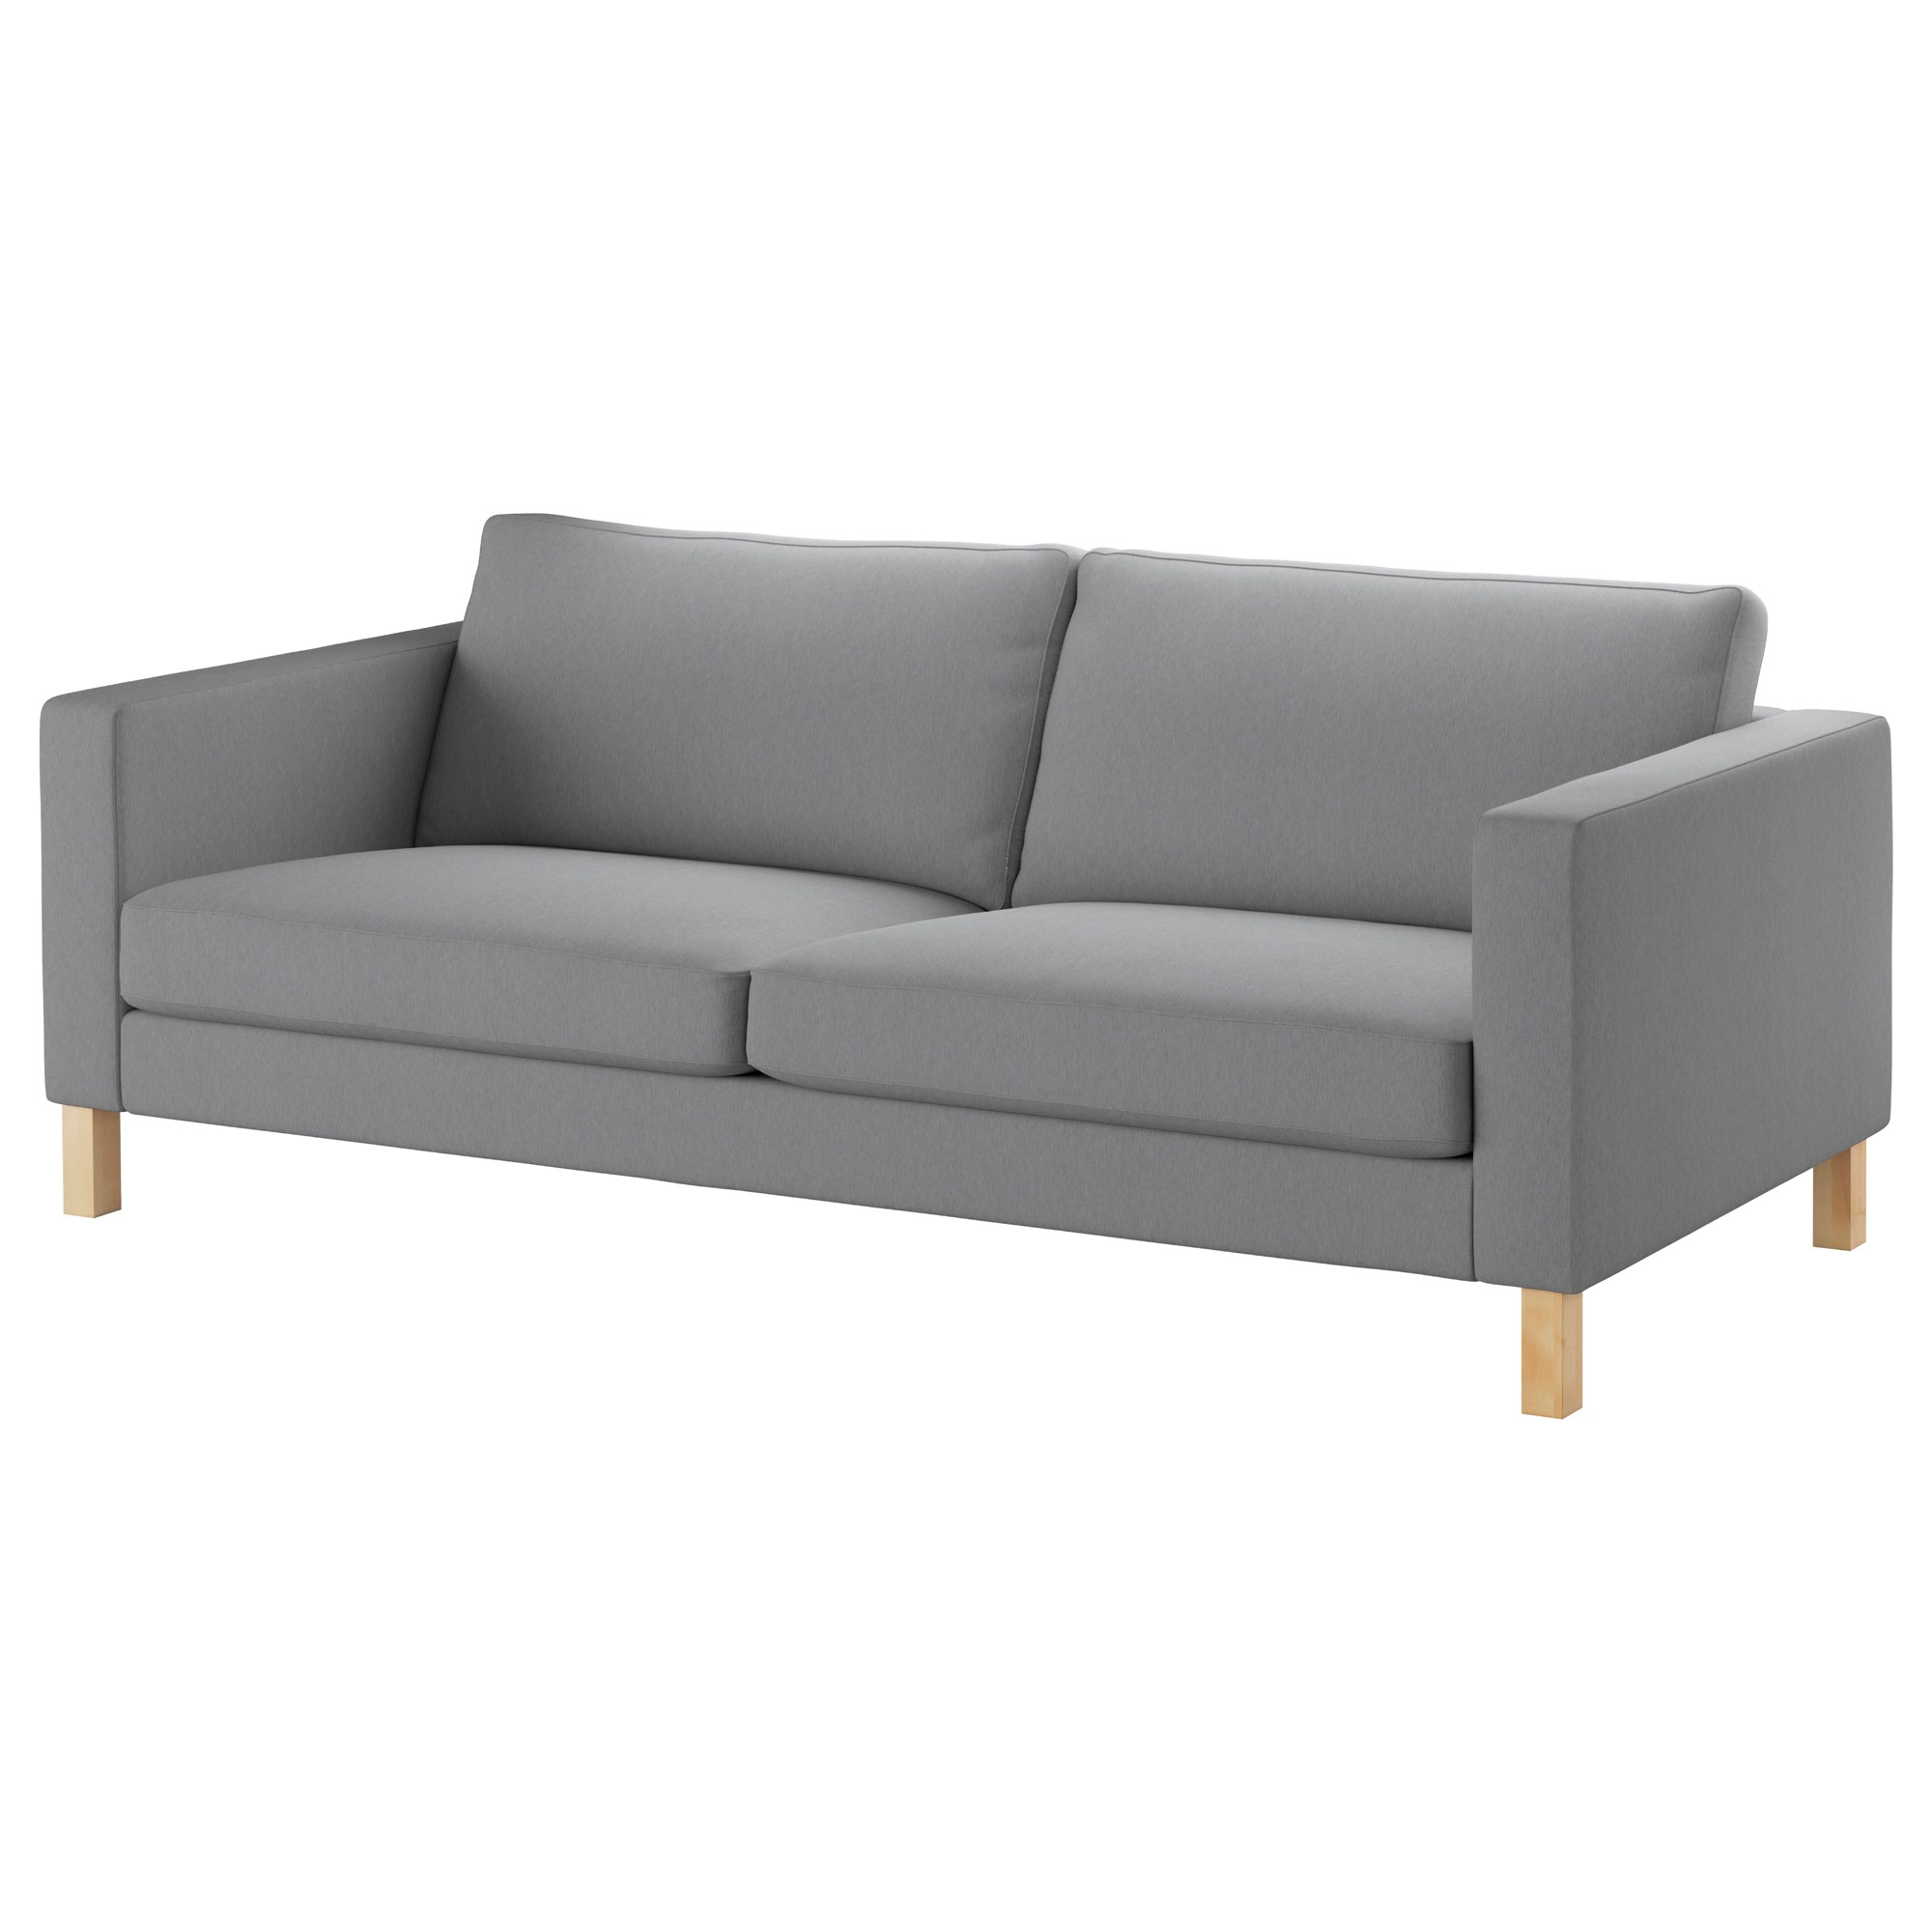 Loveseat Ikea Karlstad Sofa Knisa Light Gray